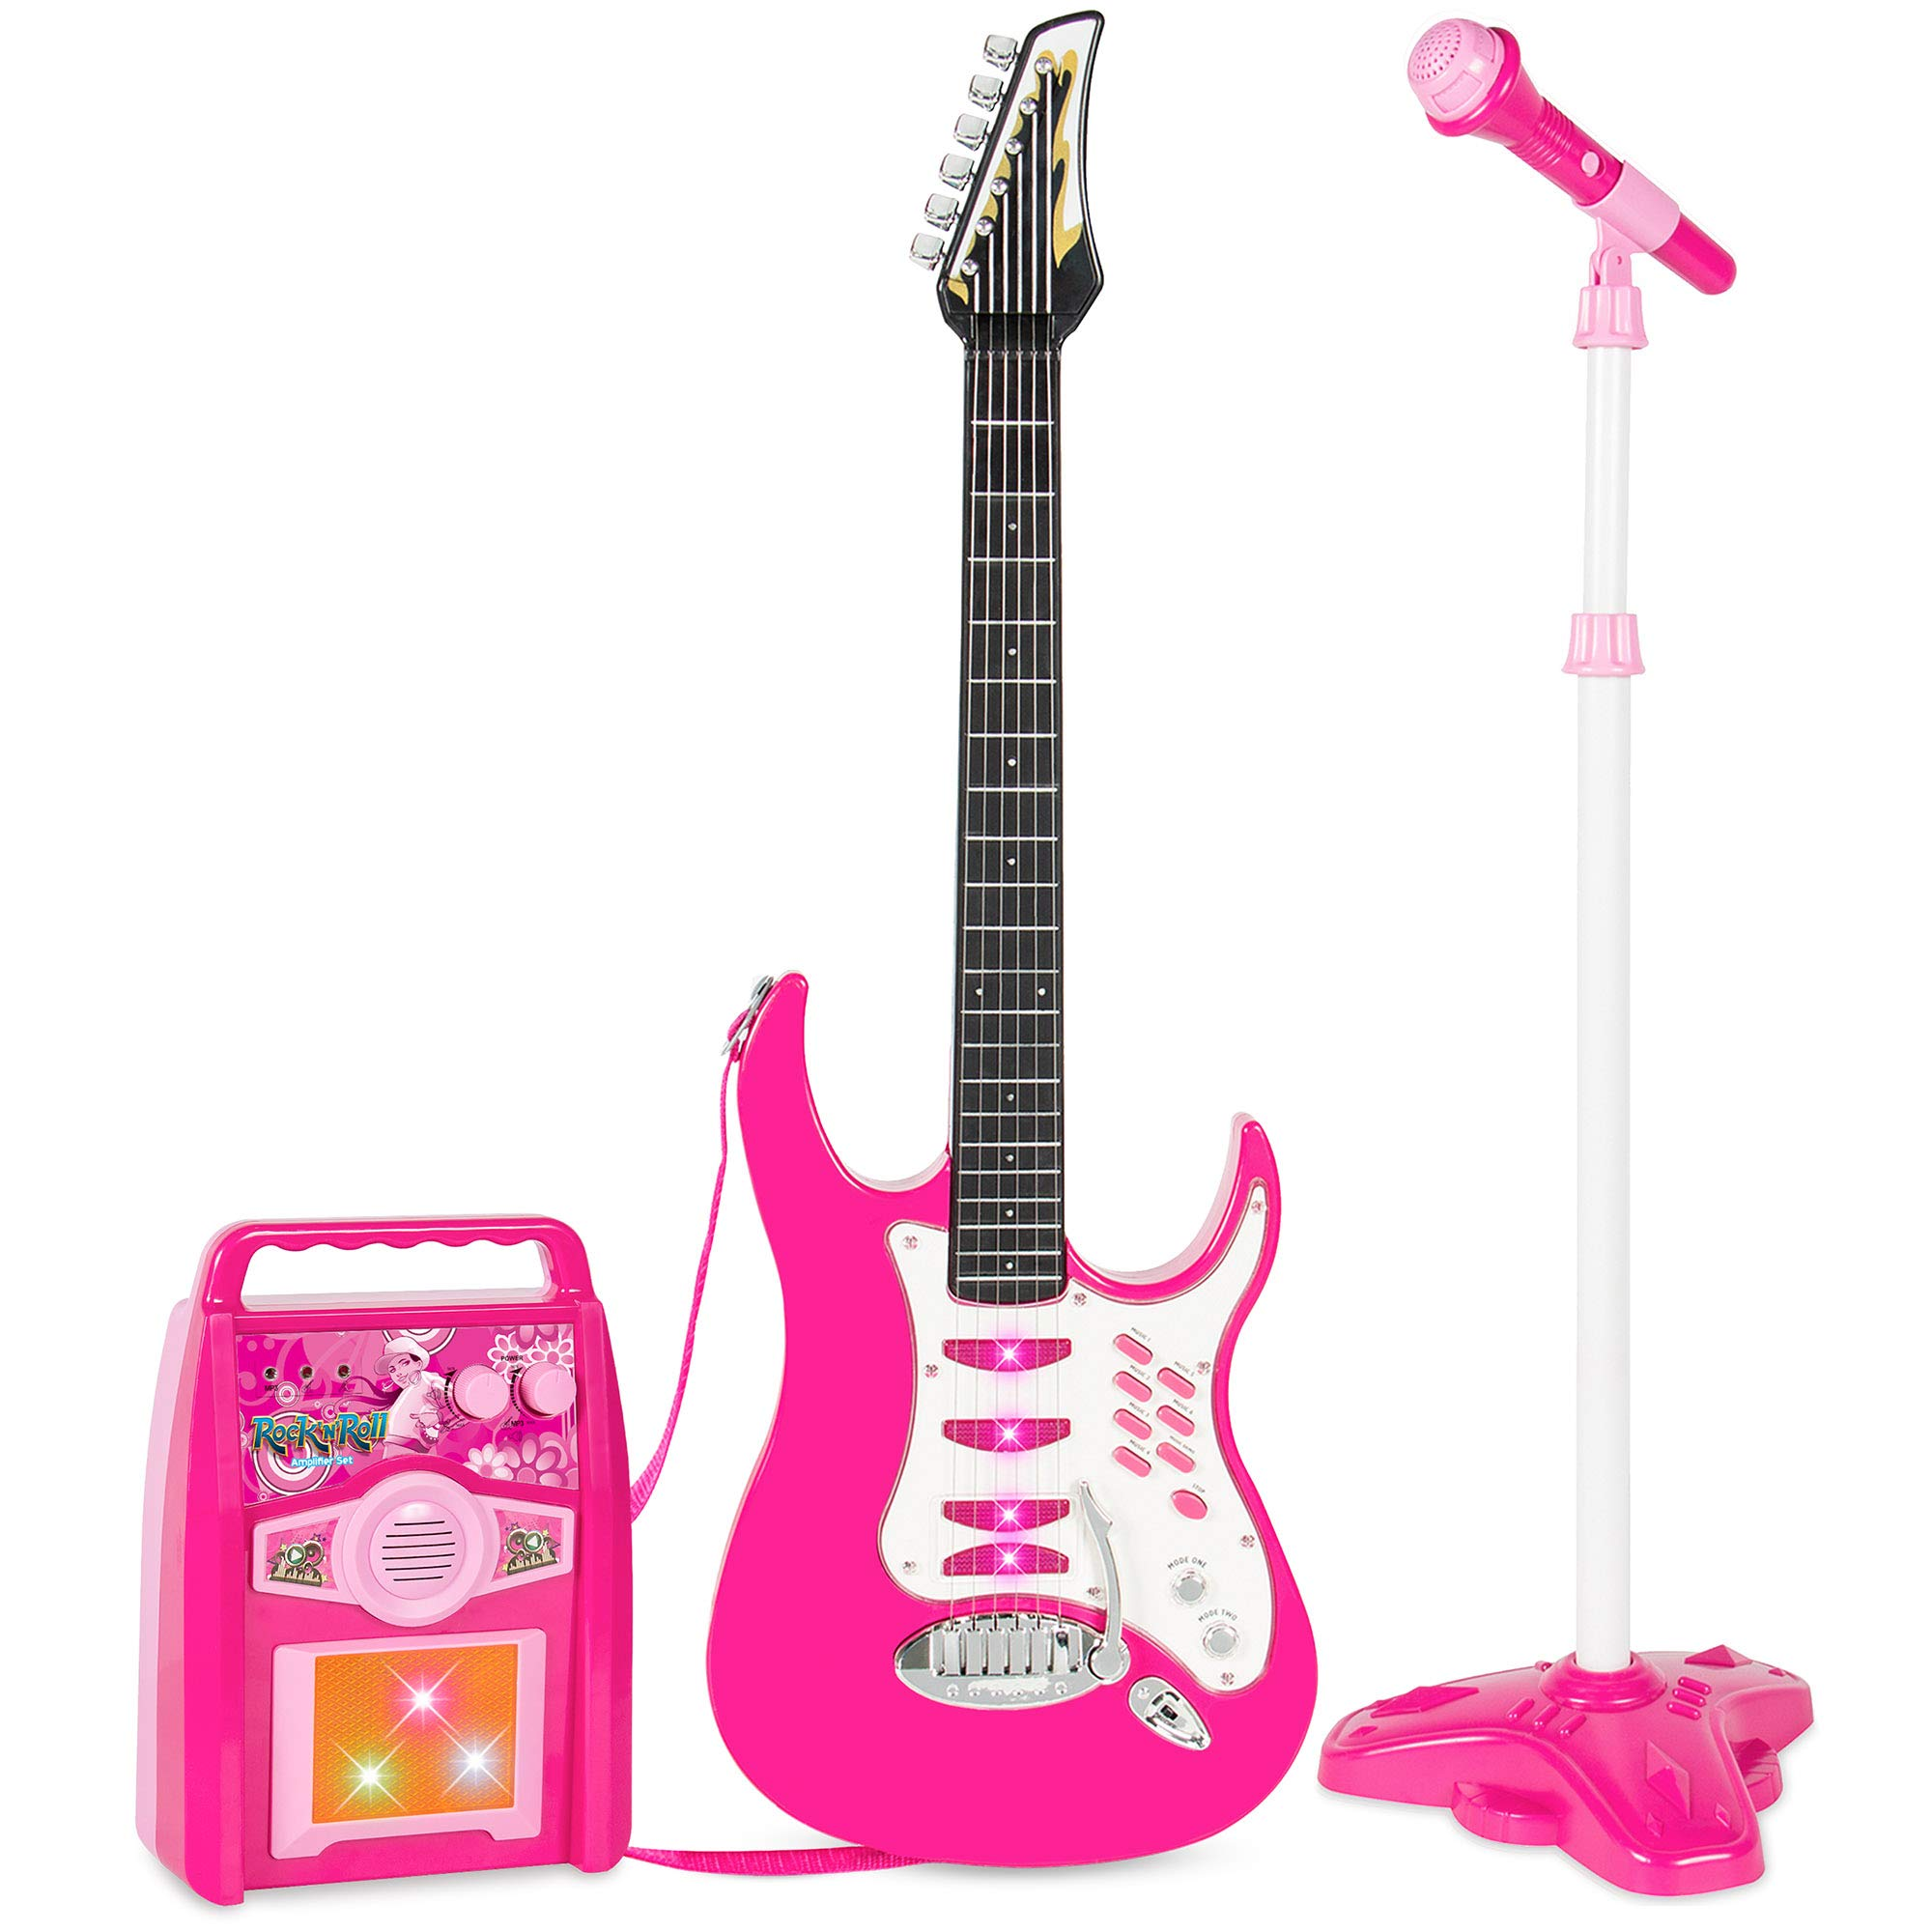 Best Choice Products Kids Electric Musical Guitar Toy Play Set w/ 6 Demo Songs, Whammy Bar, Microphone, Amp, AUX - Pink by Best Choice Products